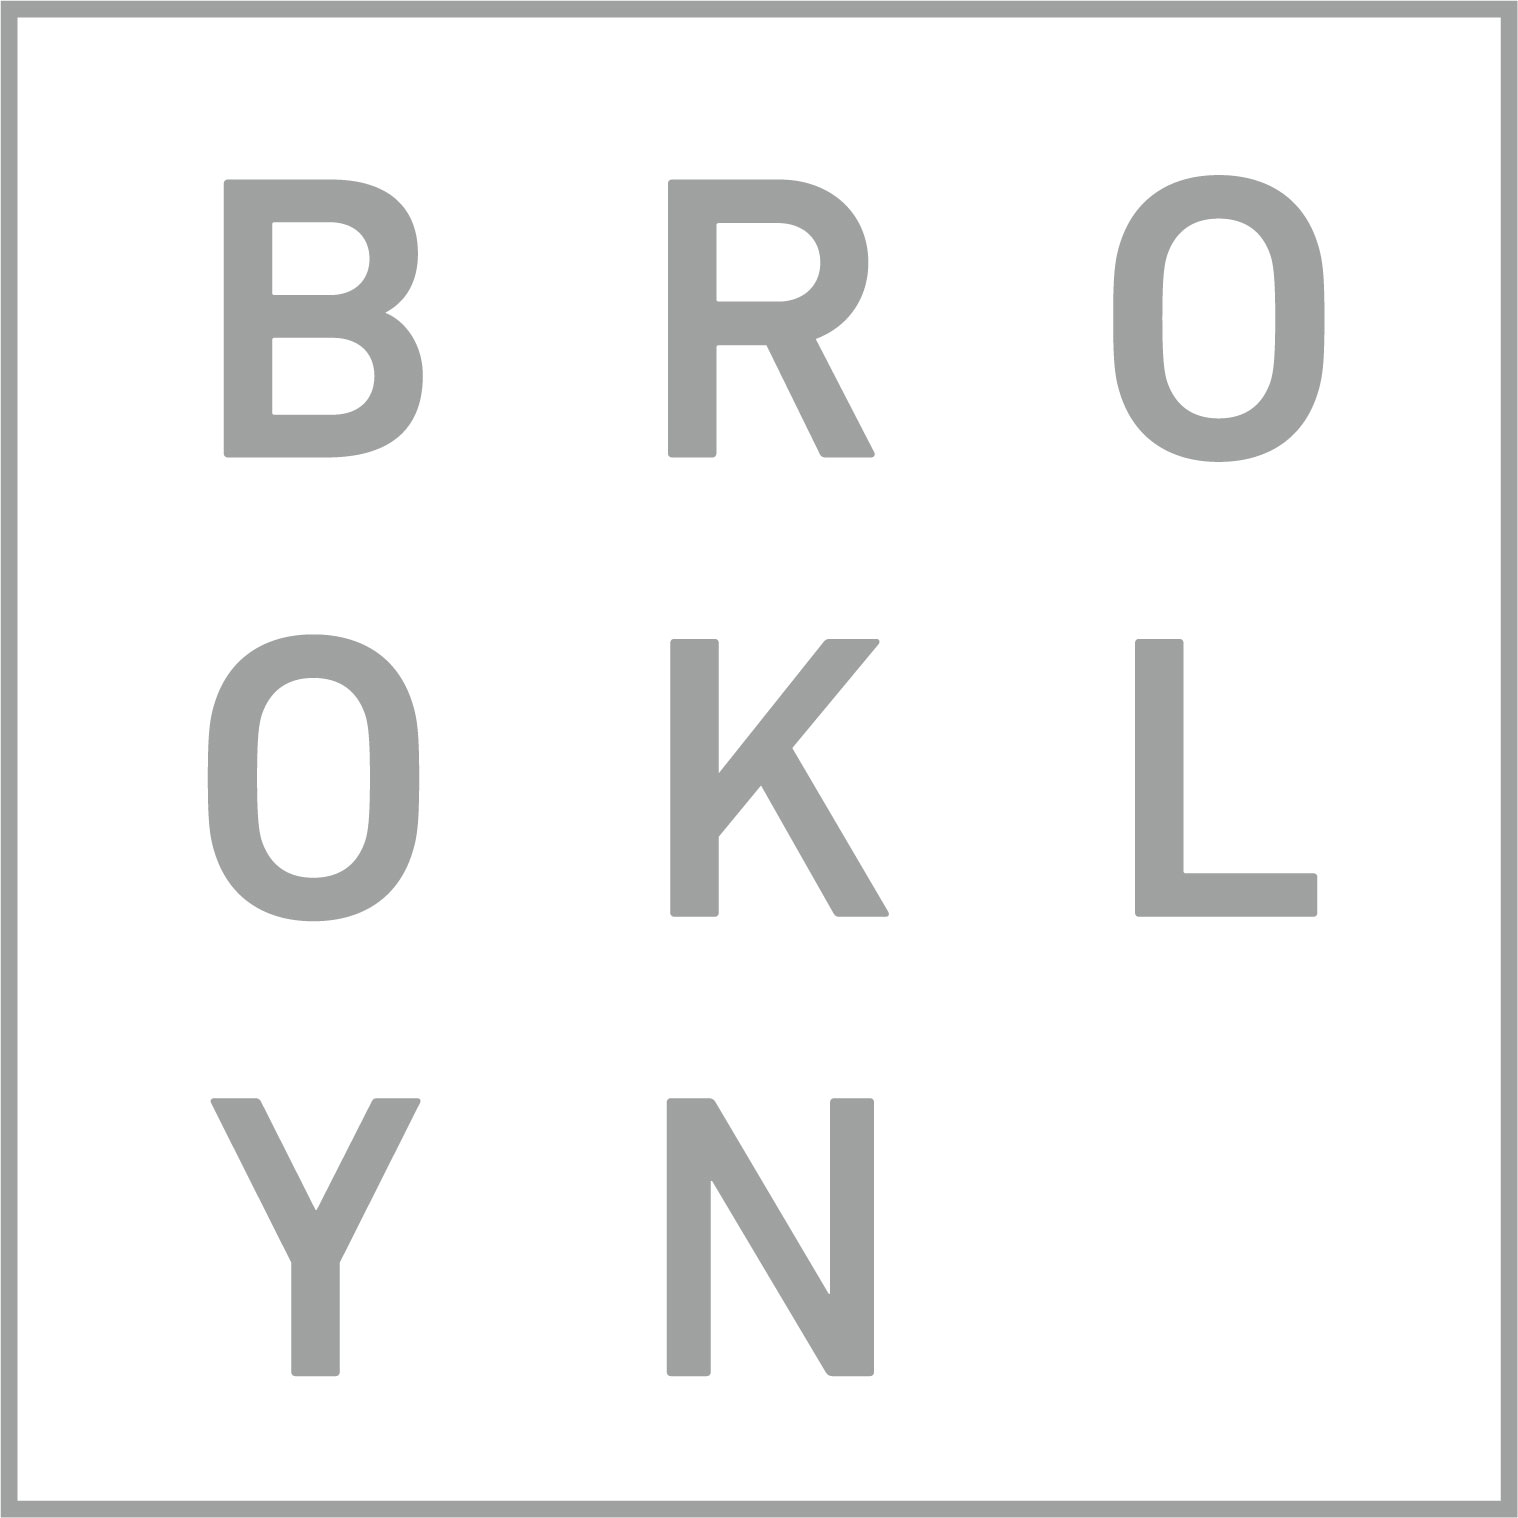 Brooklyn Yoga